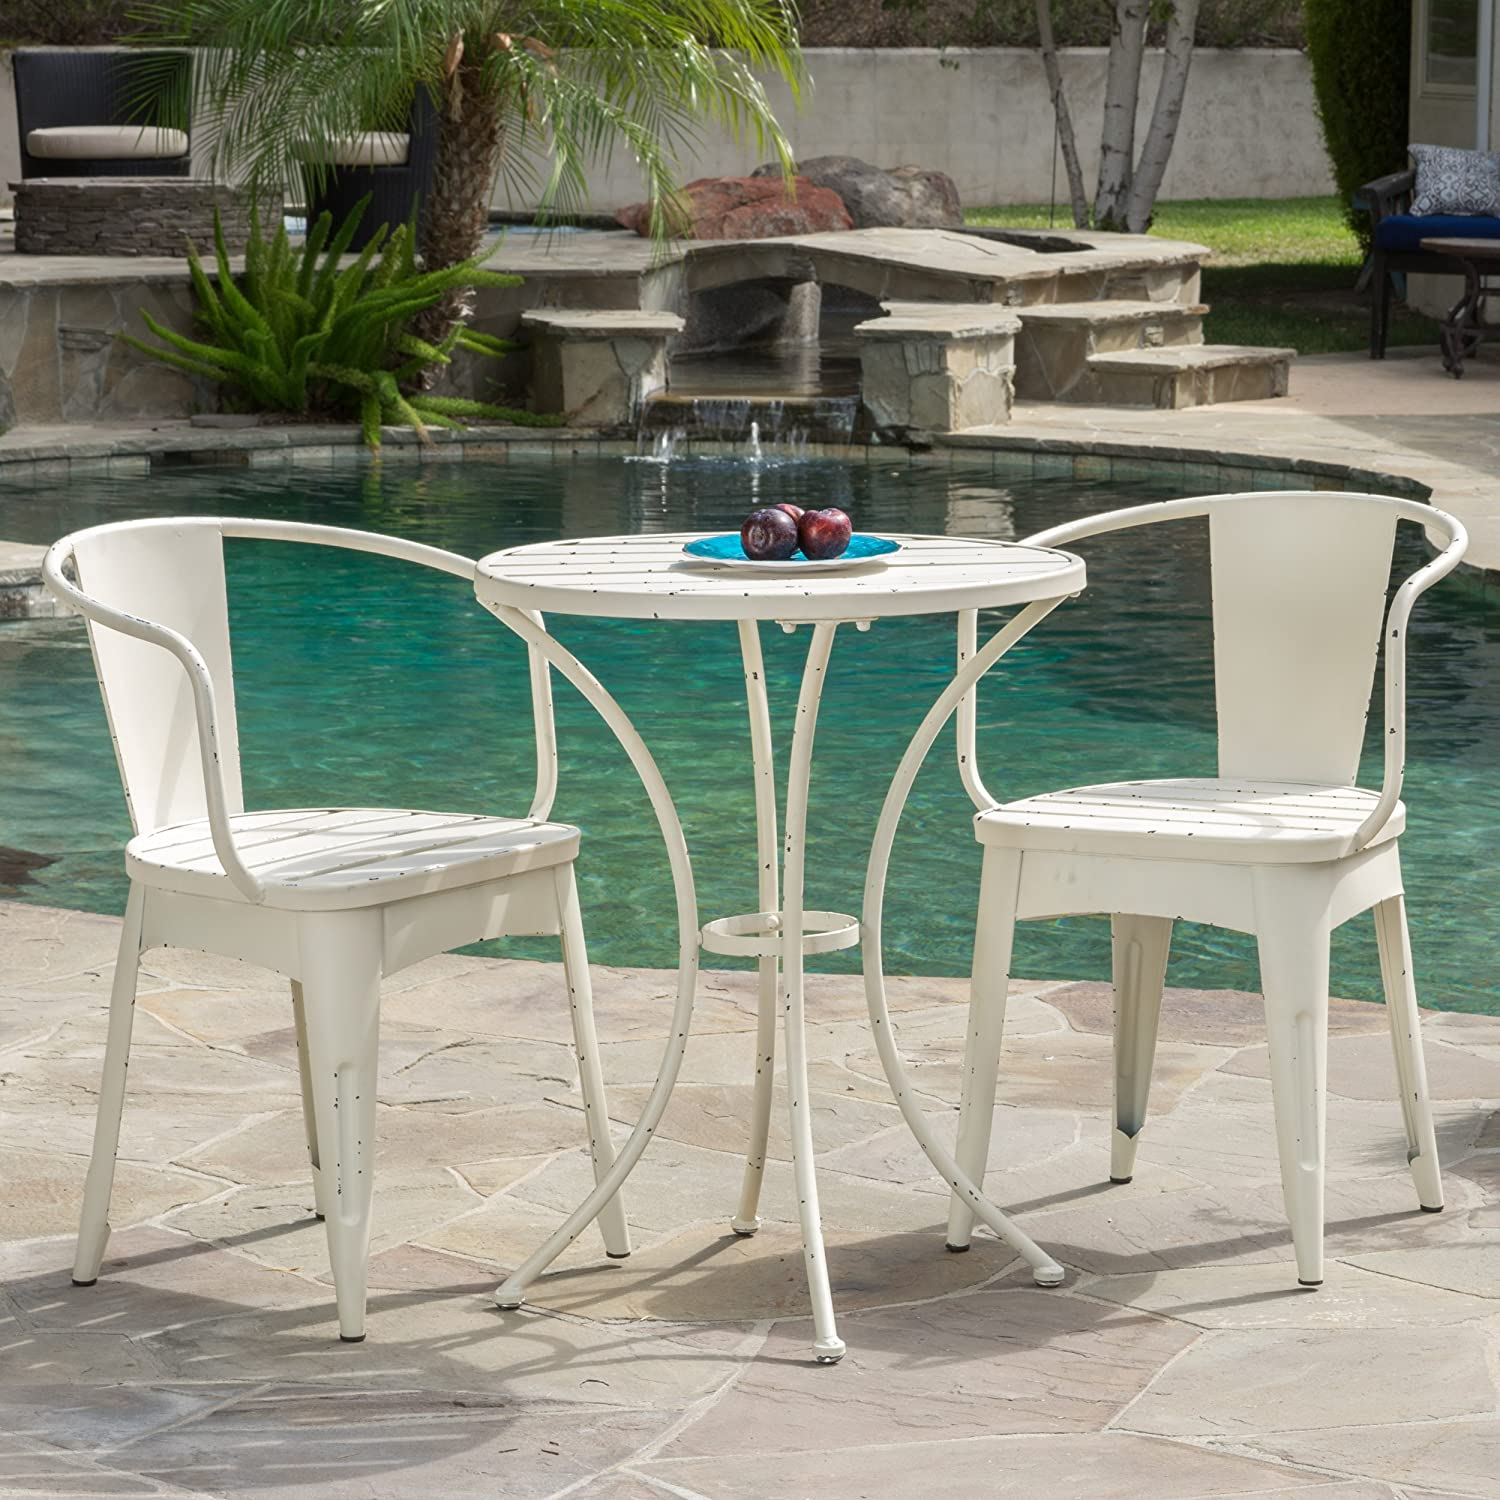 Best Of White Patio Table and Chairs